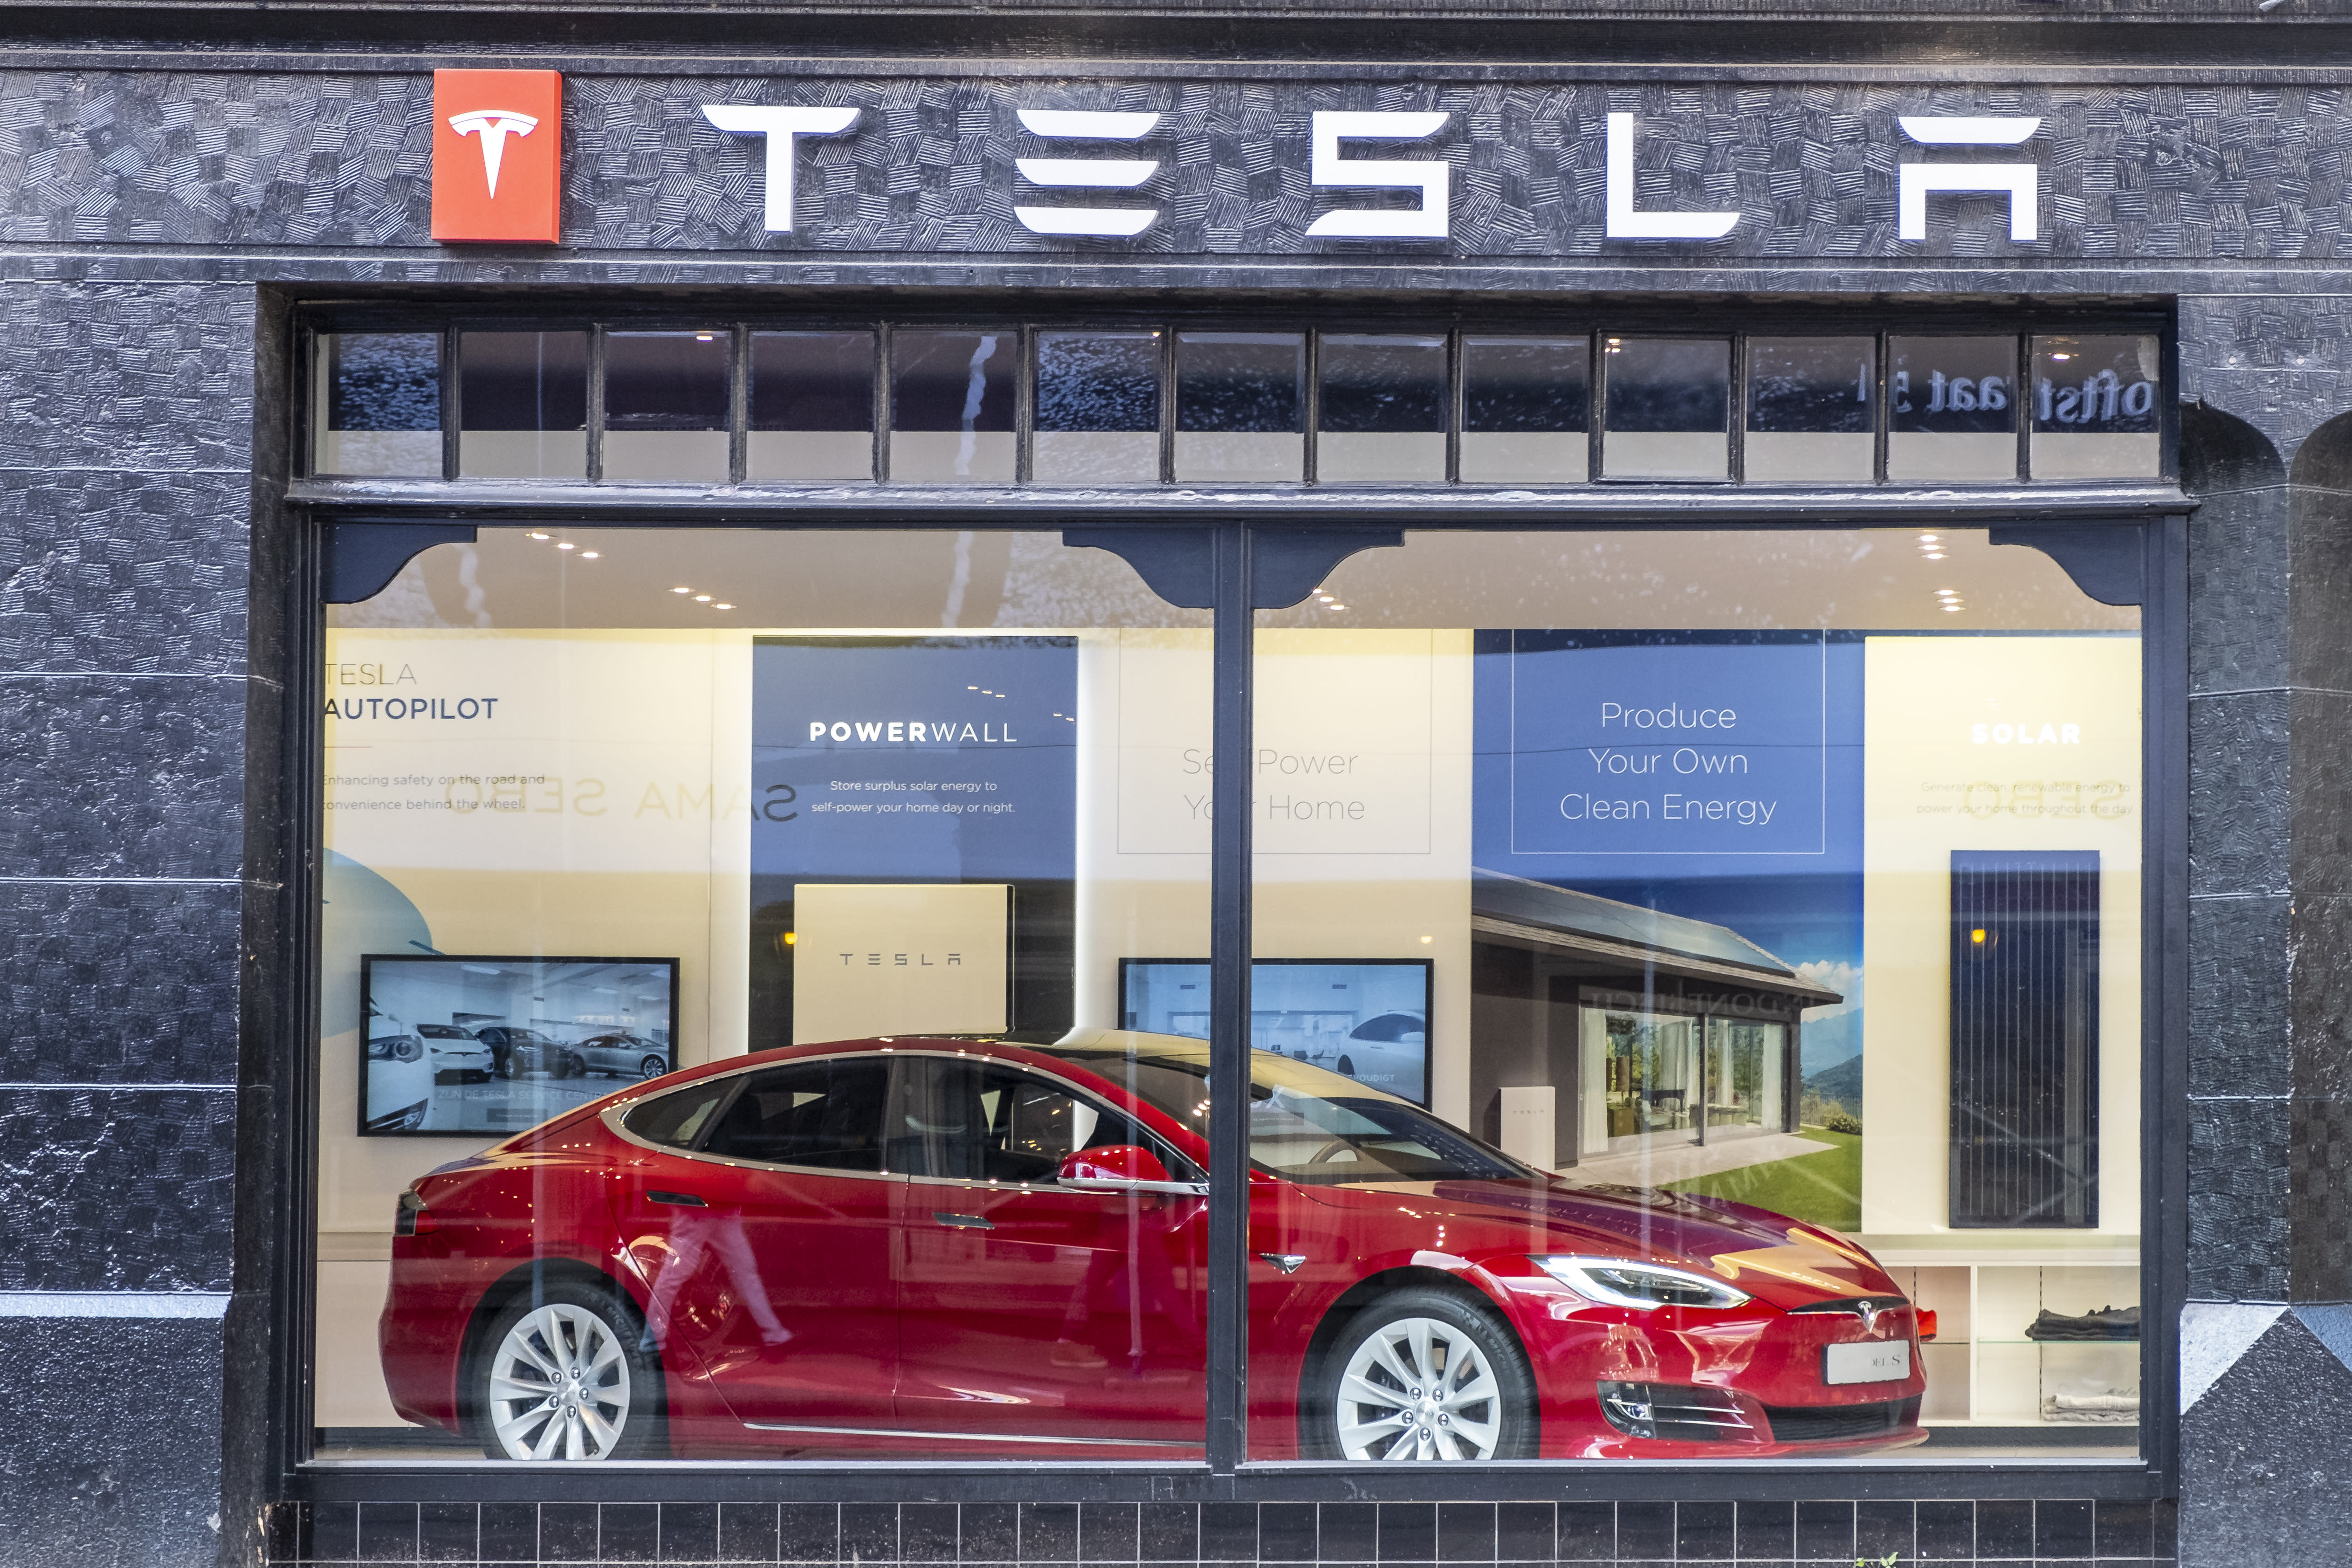 Tesla demand worries are overblown, says analyst